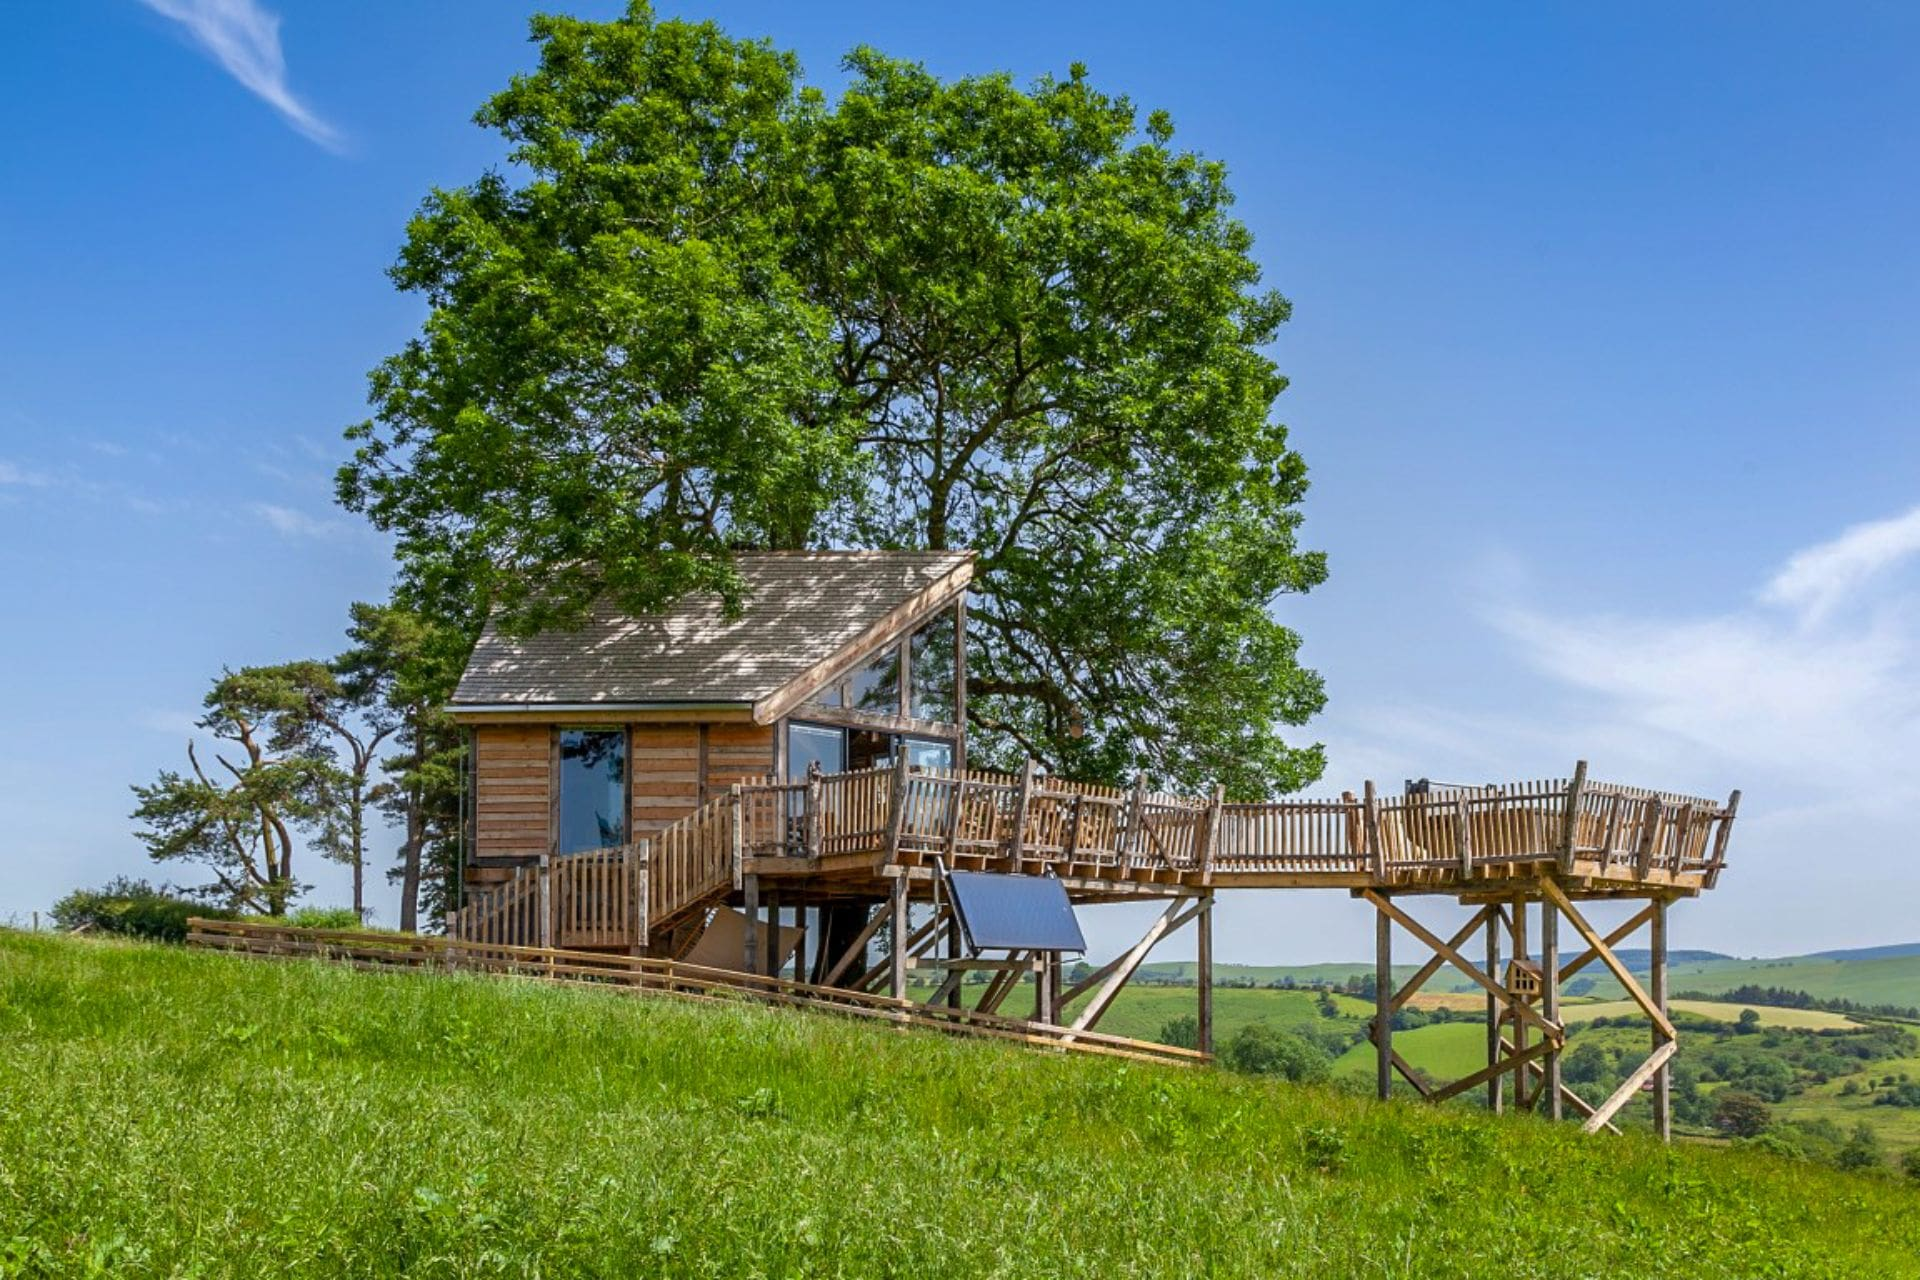 treehouse-in-field-with-rolling-hills-in-background-squirrels-nest-llandrindod-wells-powys-treehouse-holidays-uk-with-hot-tub